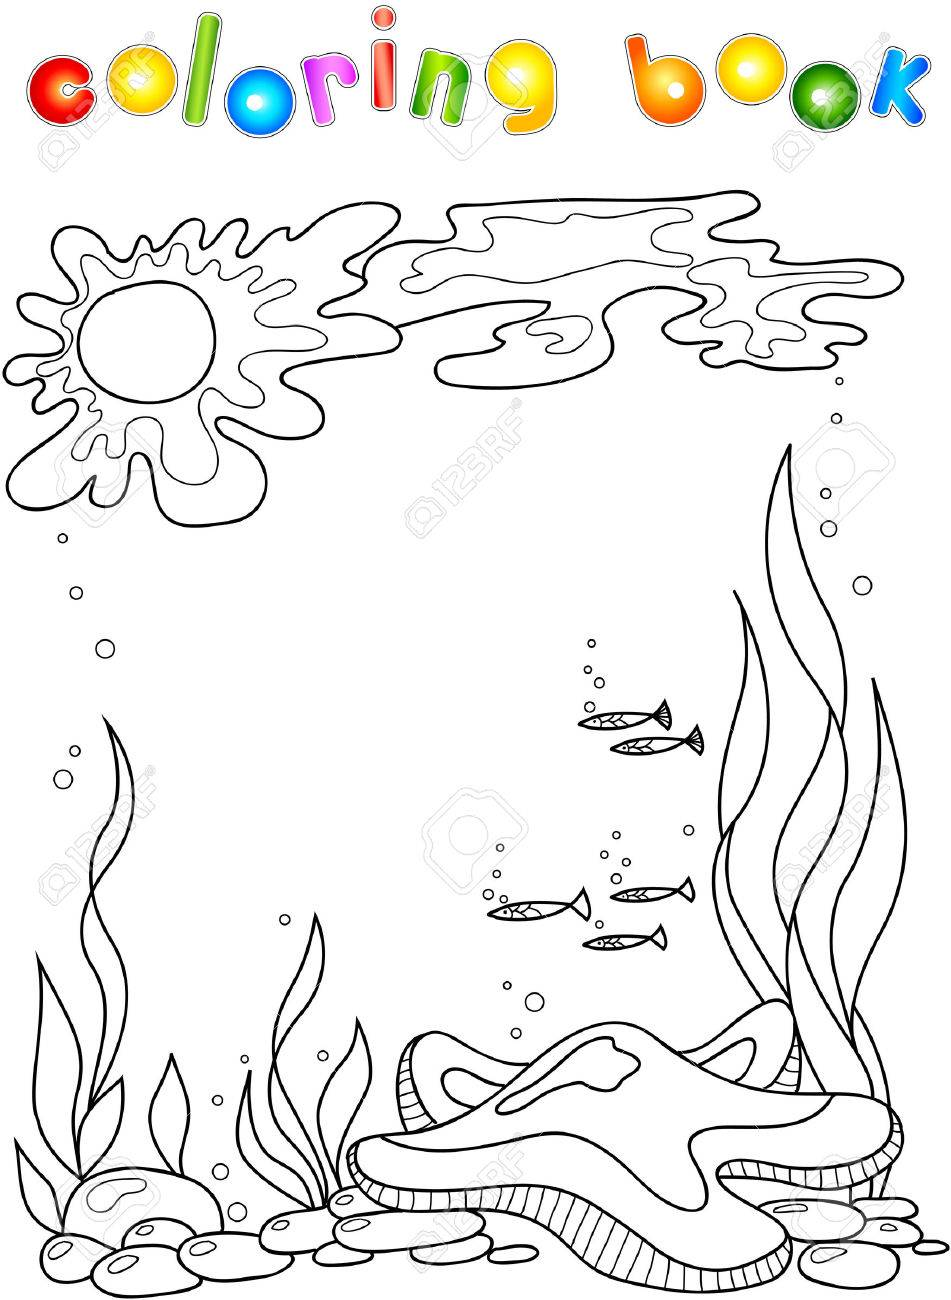 Sea Star In The Ocean. Coloring Book For Children. Stock Photo ...